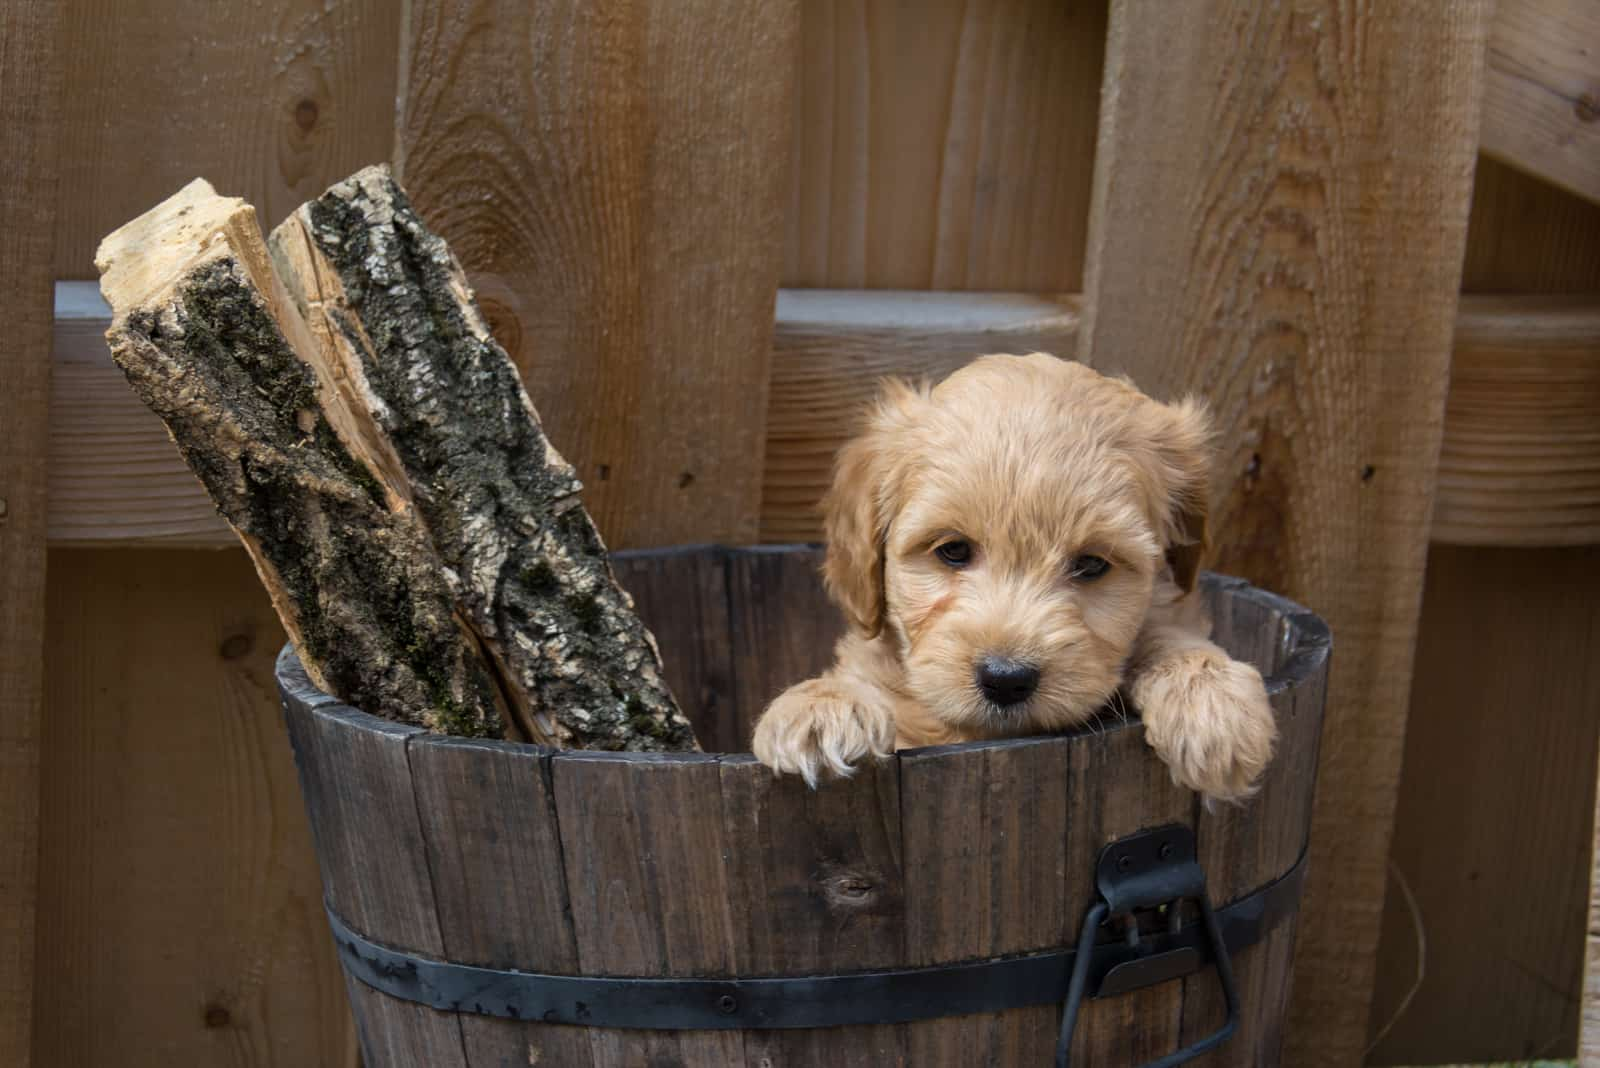 Mini Goldendoodle puppy in a bucket with logs